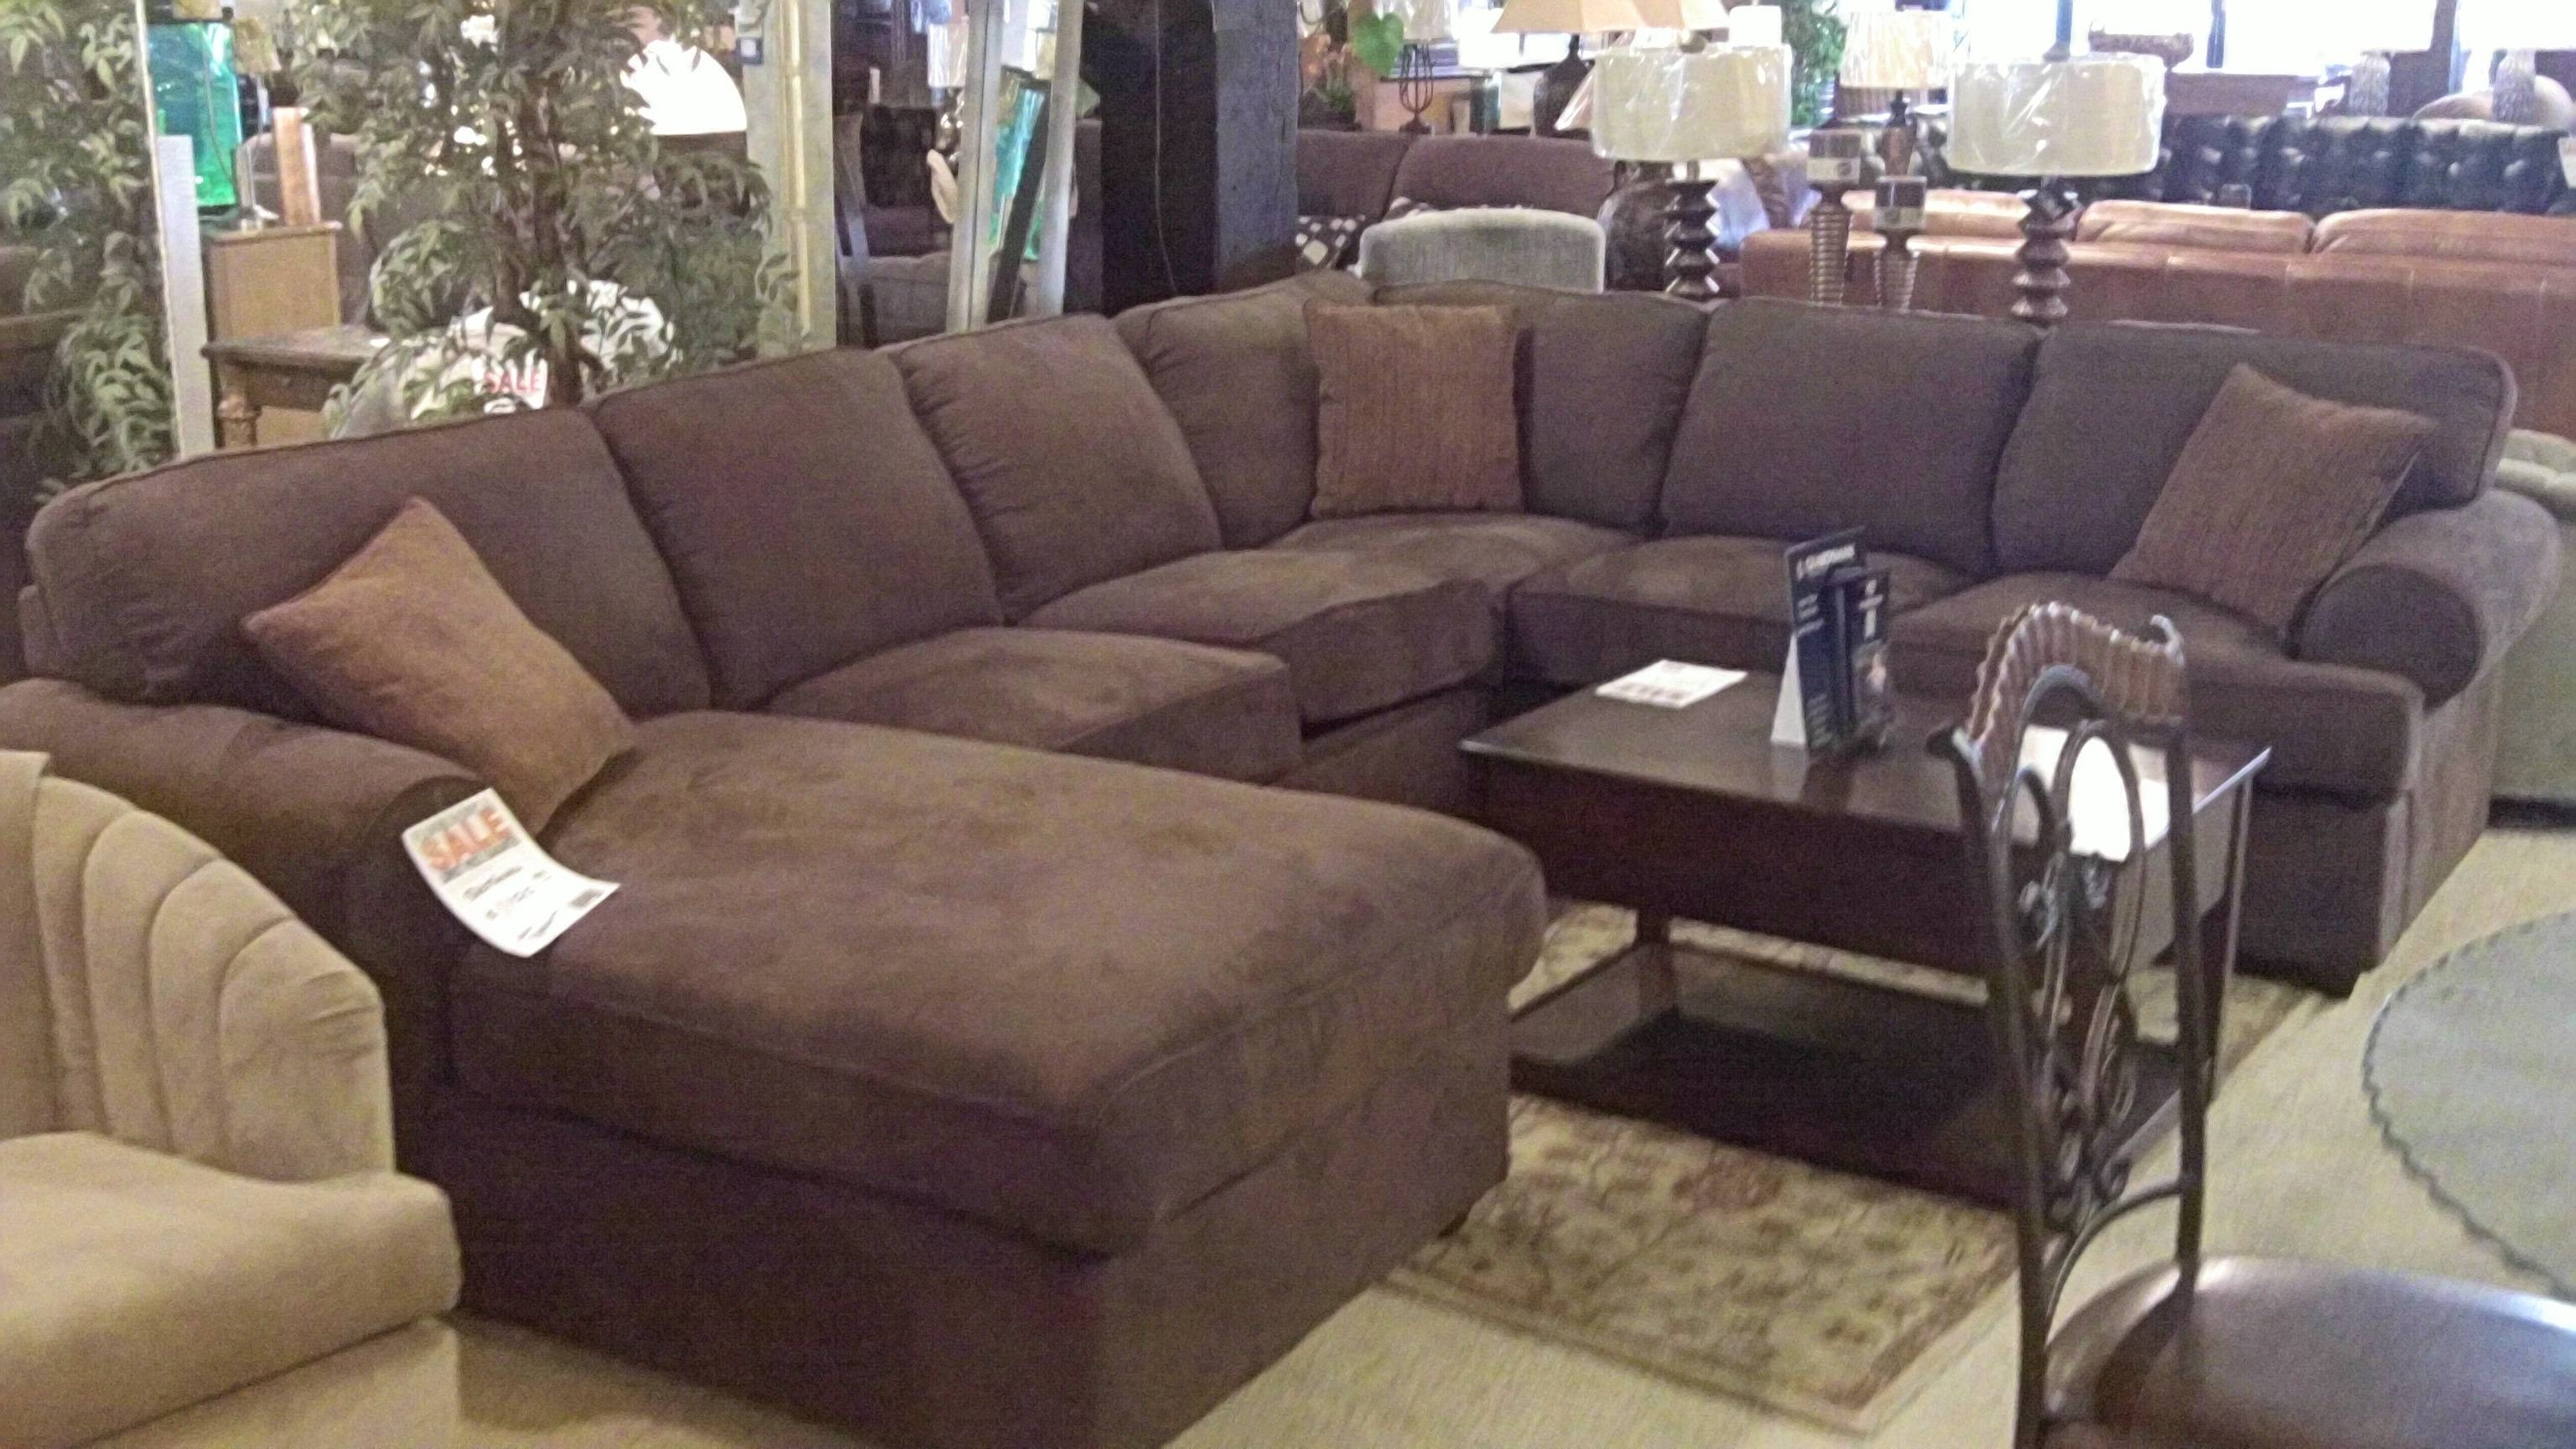 Down Filled Sofas And Sectionals - Hotelsbacau inside Down Filled Sofa Sectional (Image 5 of 25)